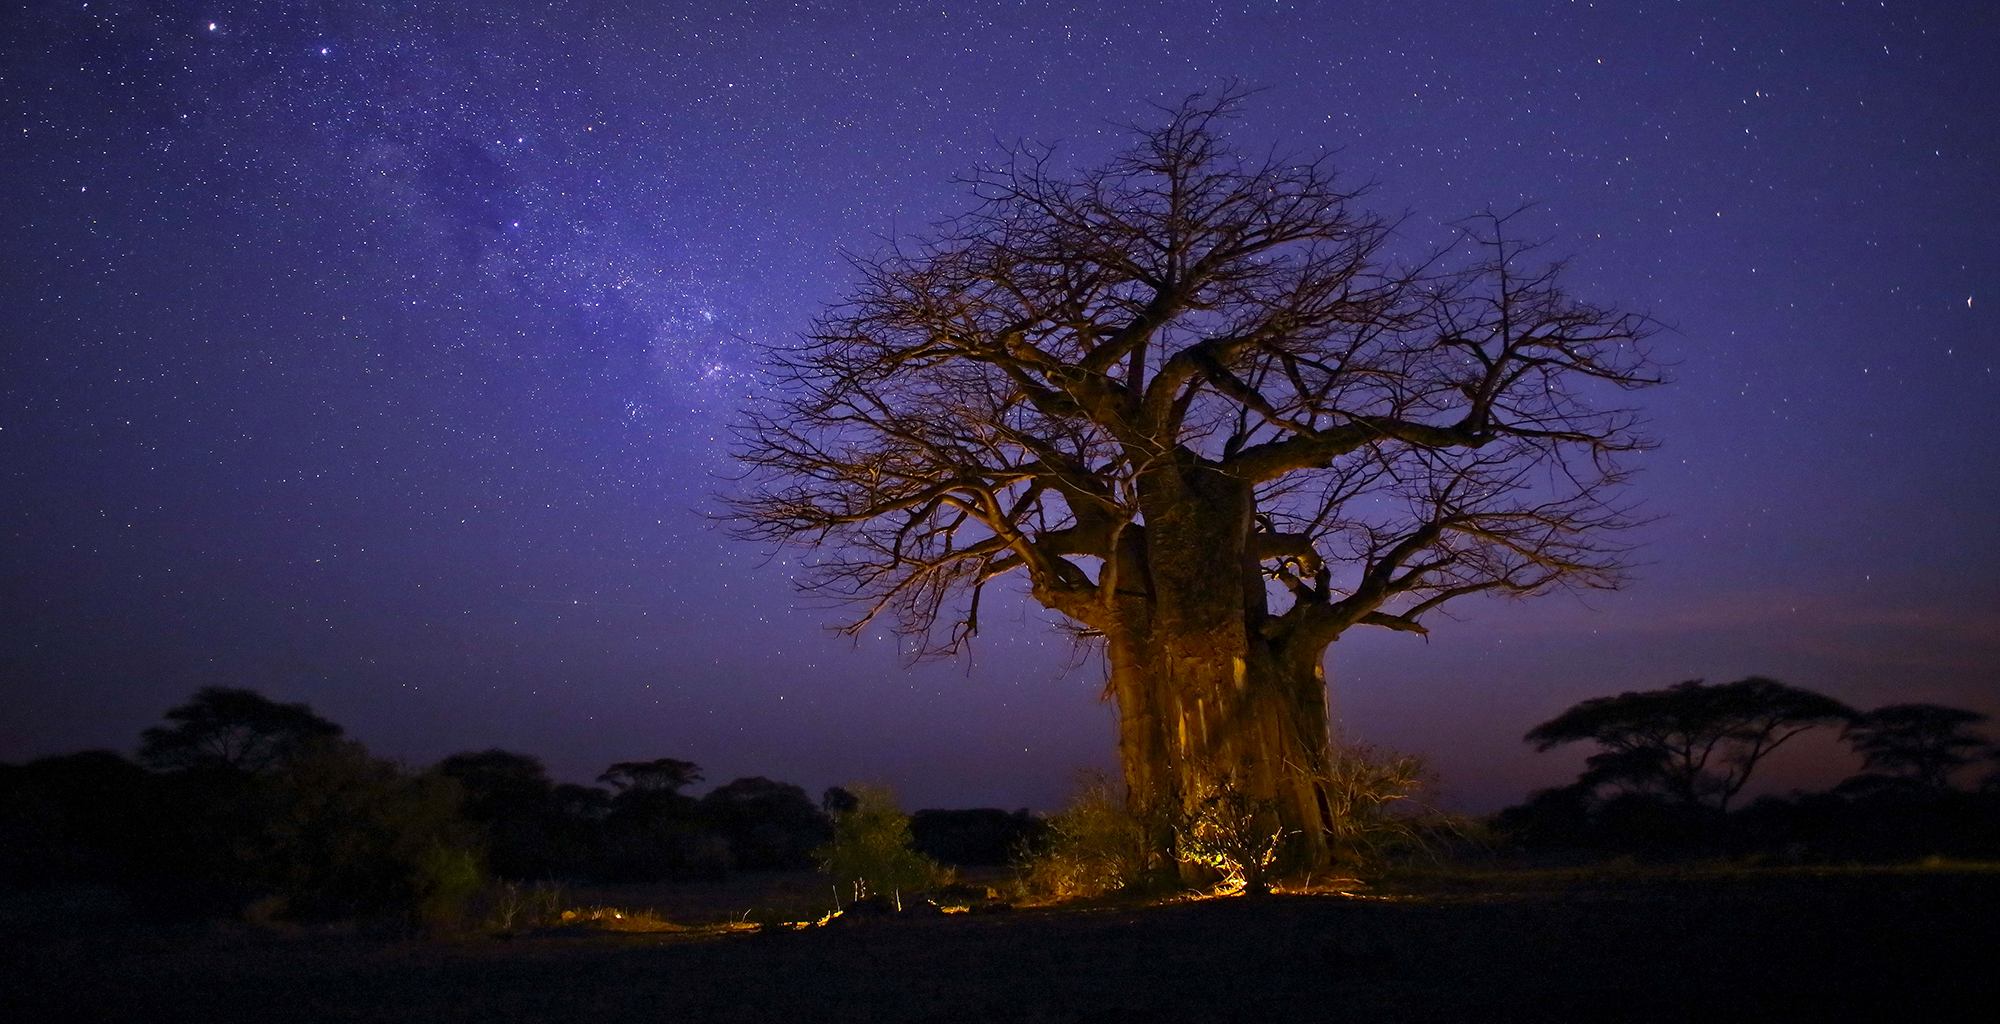 Tanzania-Ruaha-National-Park-Baobab-Night